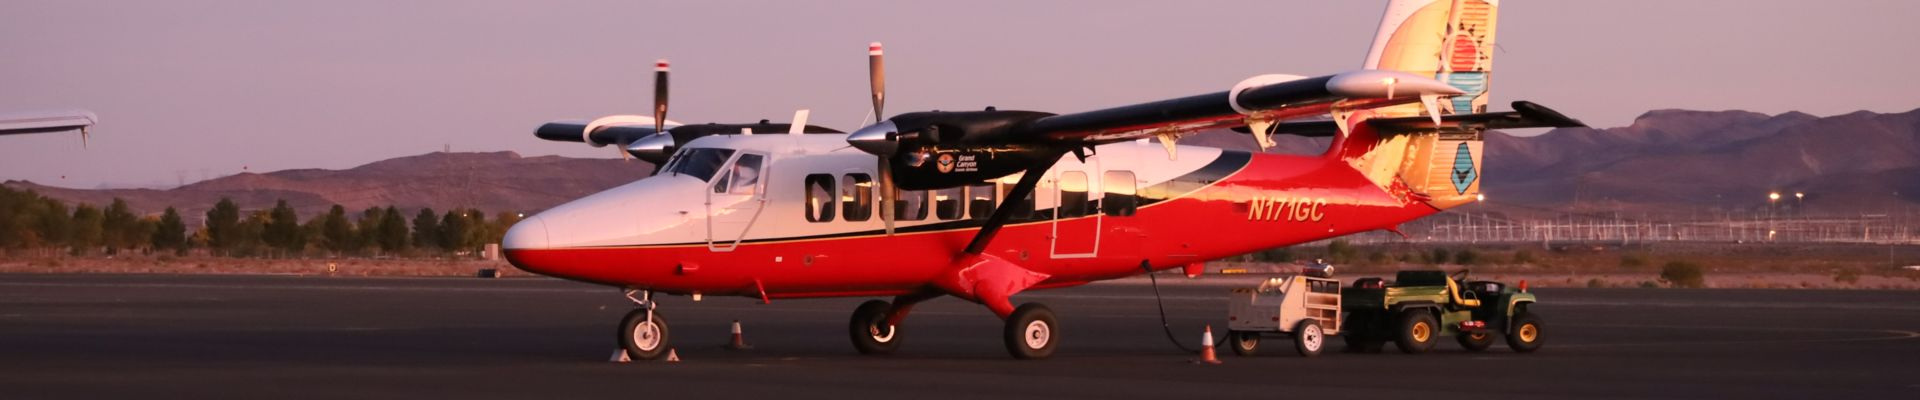 A Twin Otter airplane parked on an airport tarmac at sunset.